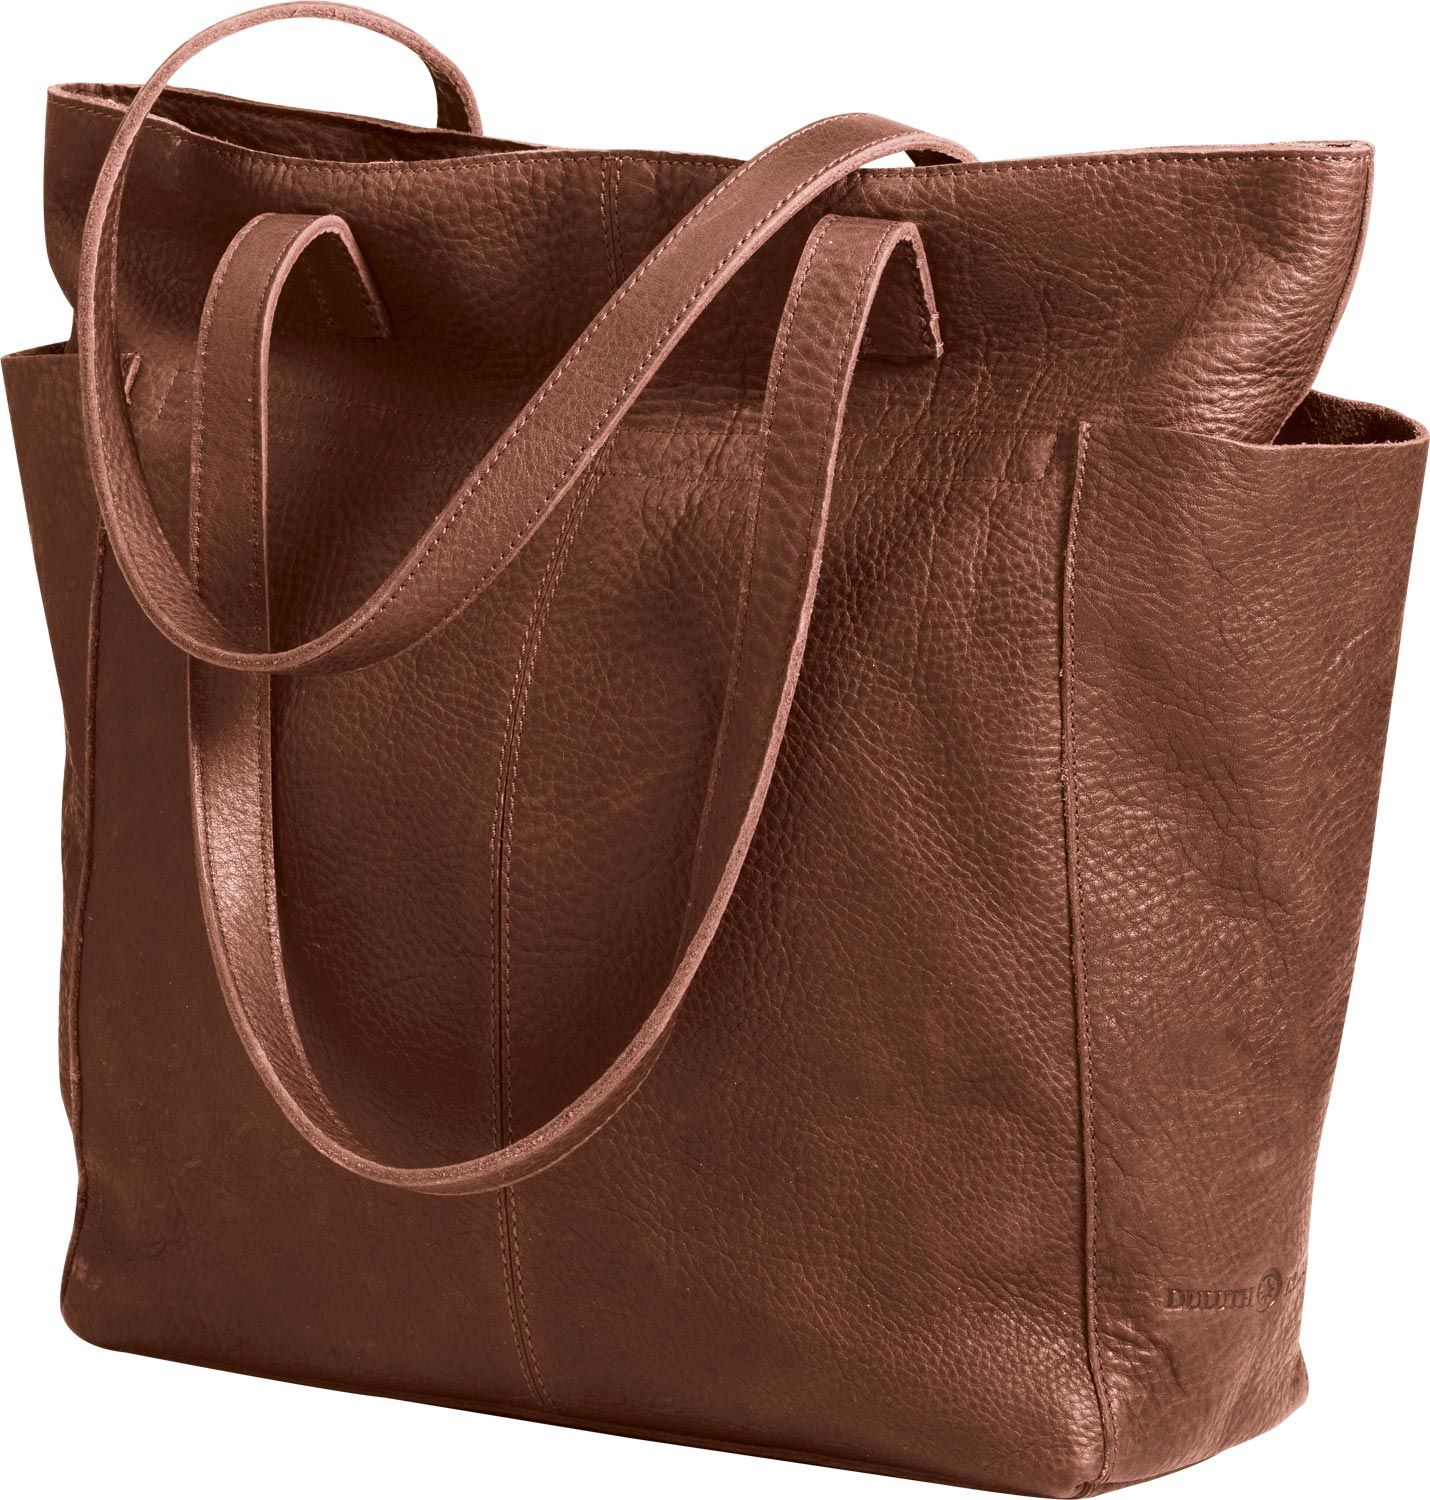 099af6de5c0c5c Women's Lifetime Leather Travel Tote Bag from Duluth Trading Company is  made of beautiful, full-grain leather. This bag gets better with age,  softening and ...